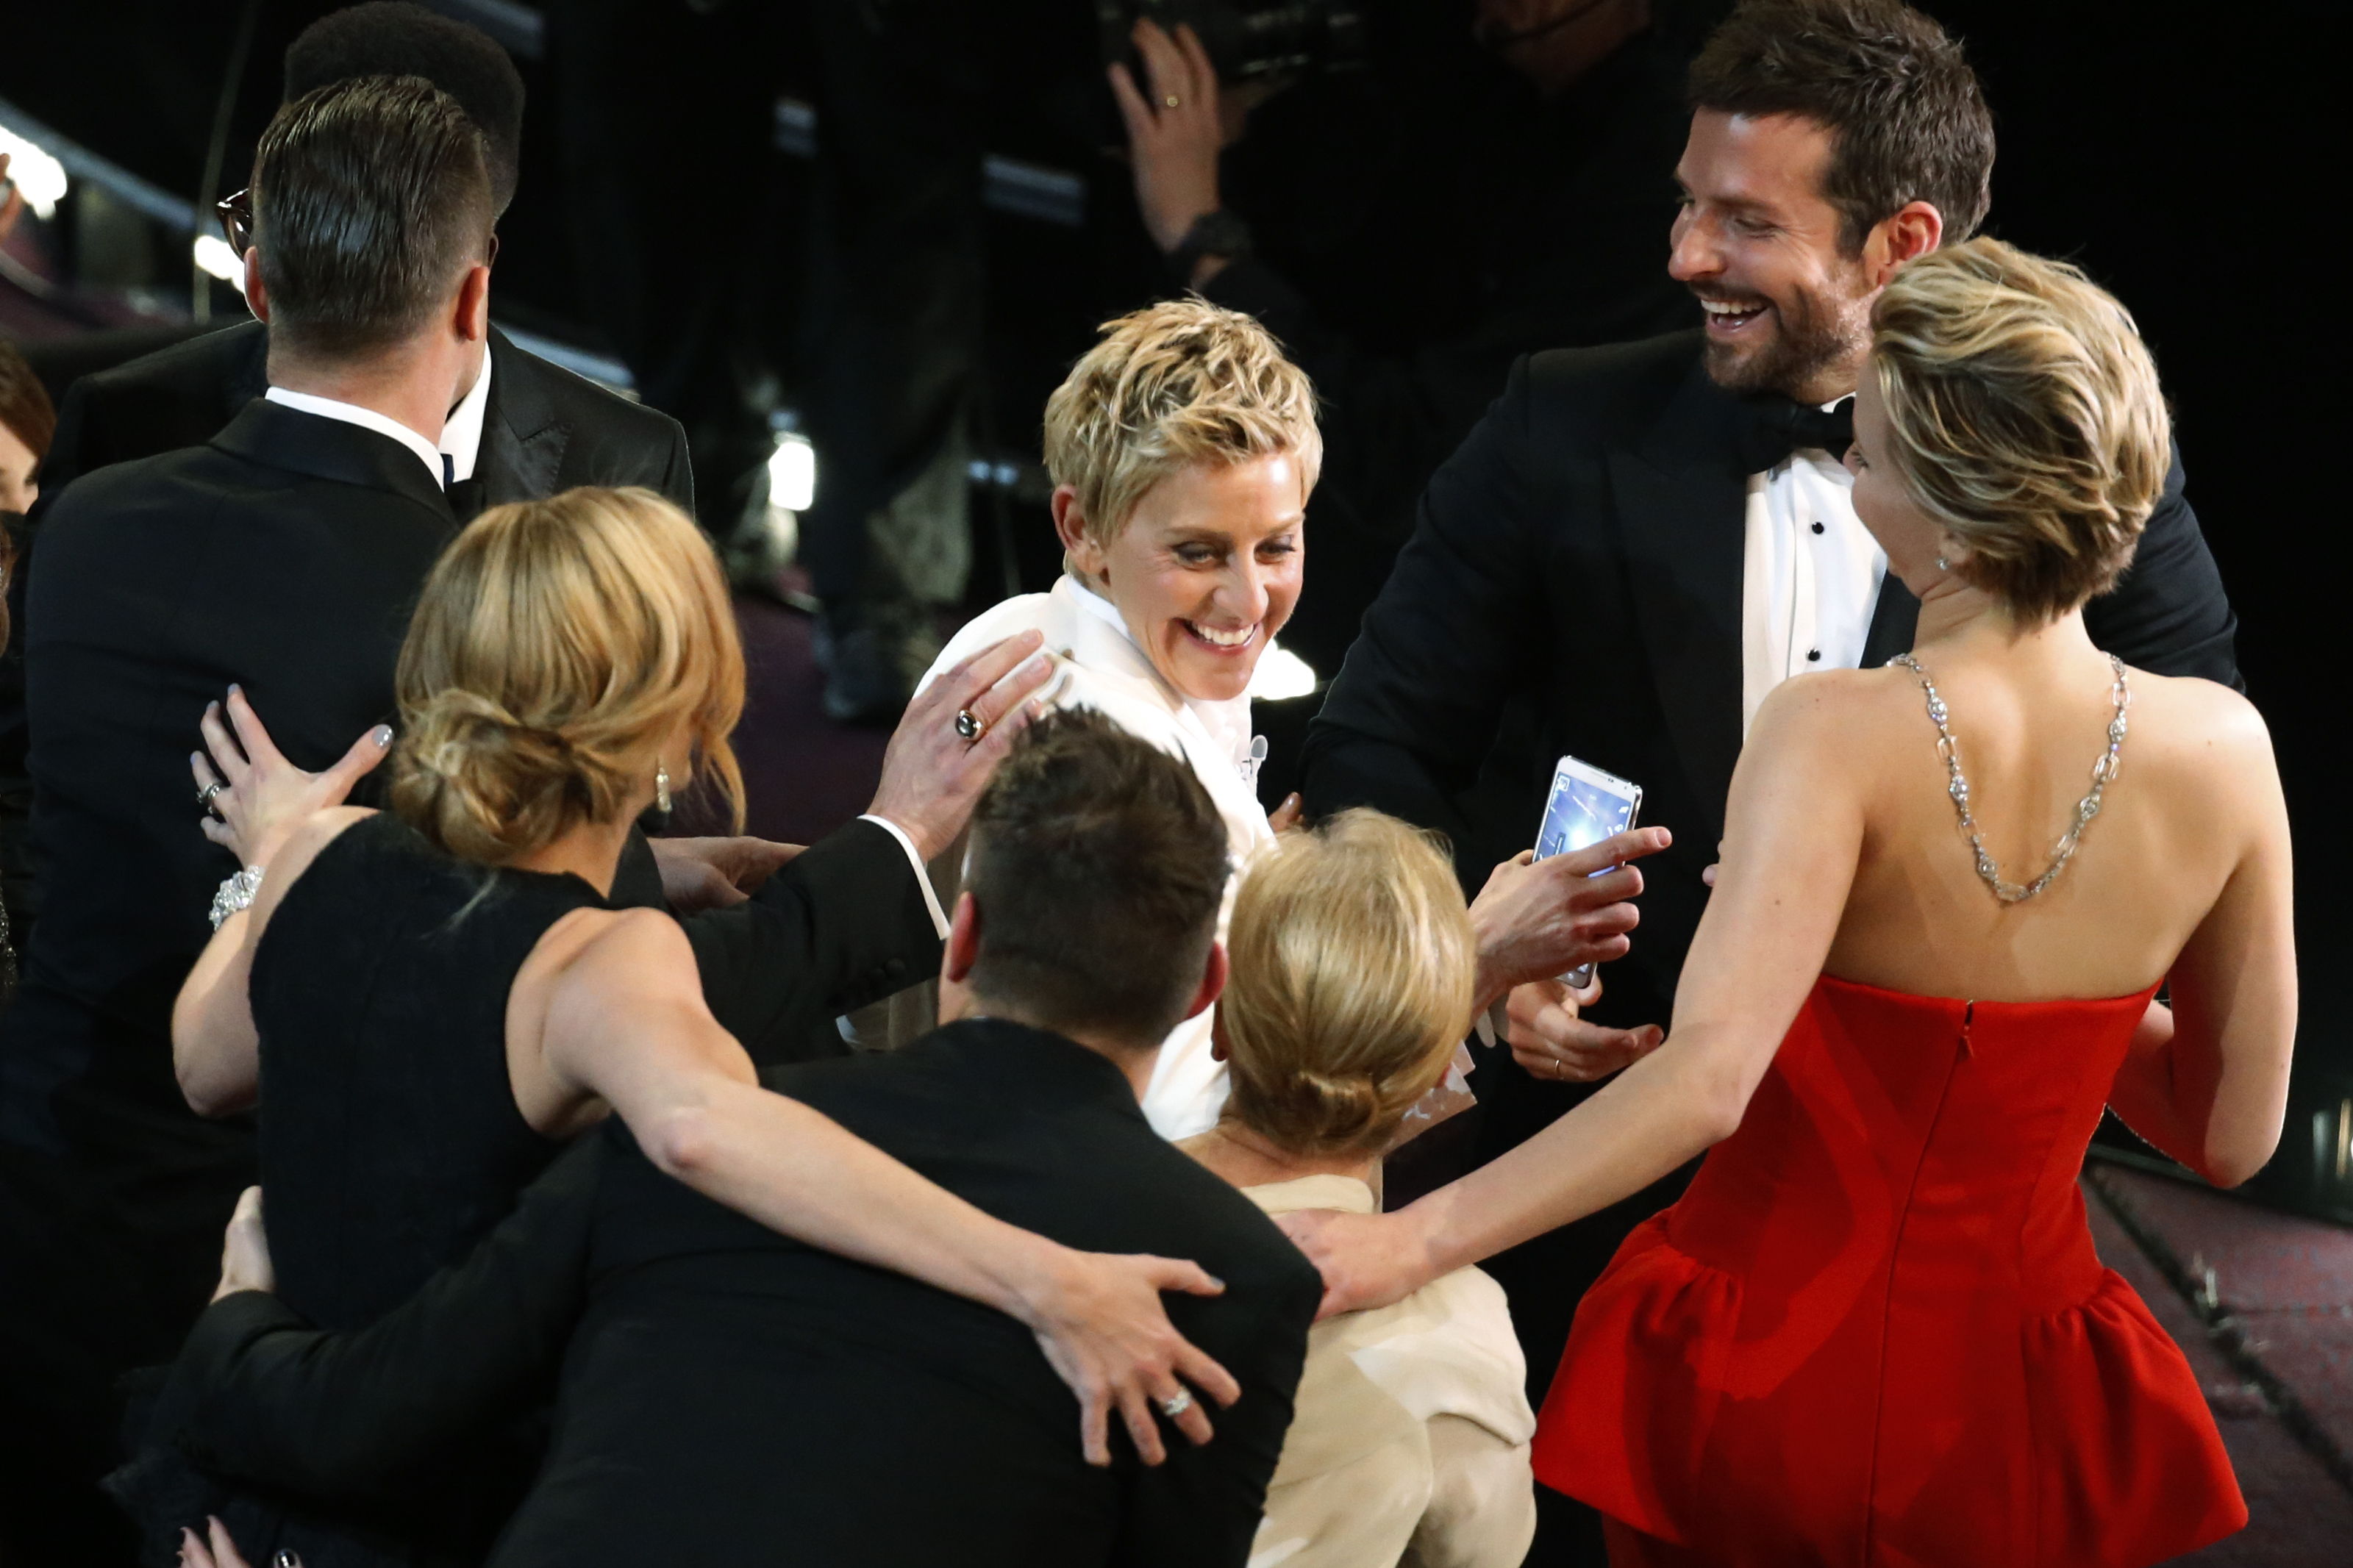 Host Ellen DeGeneres shares a laugh with Oscar nominees after taking a group  selfie  during the 86th Annual Academy Awards.